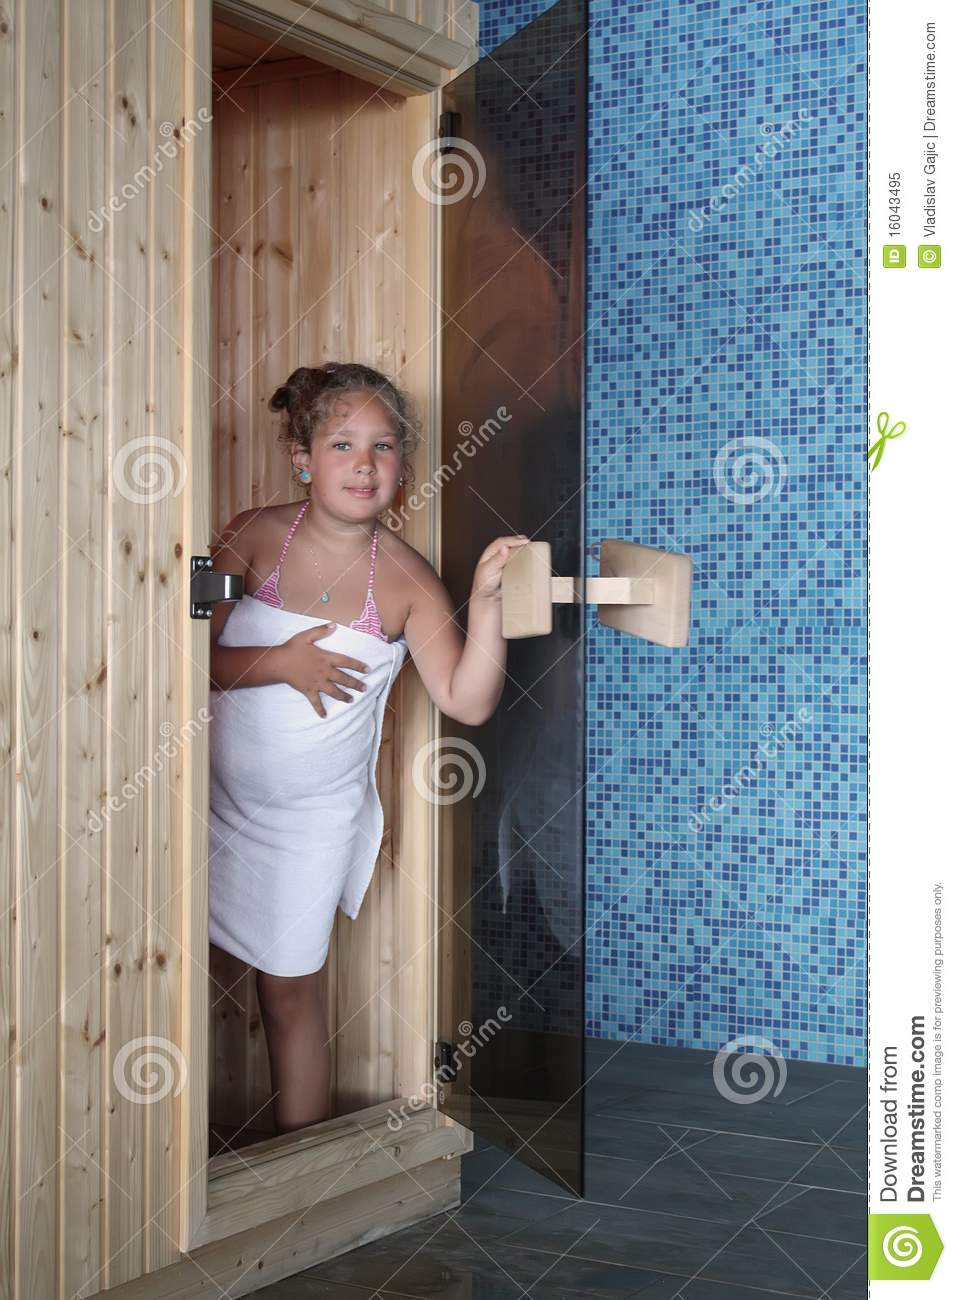 girl by the sauna stock image  image of care  enjoy  health